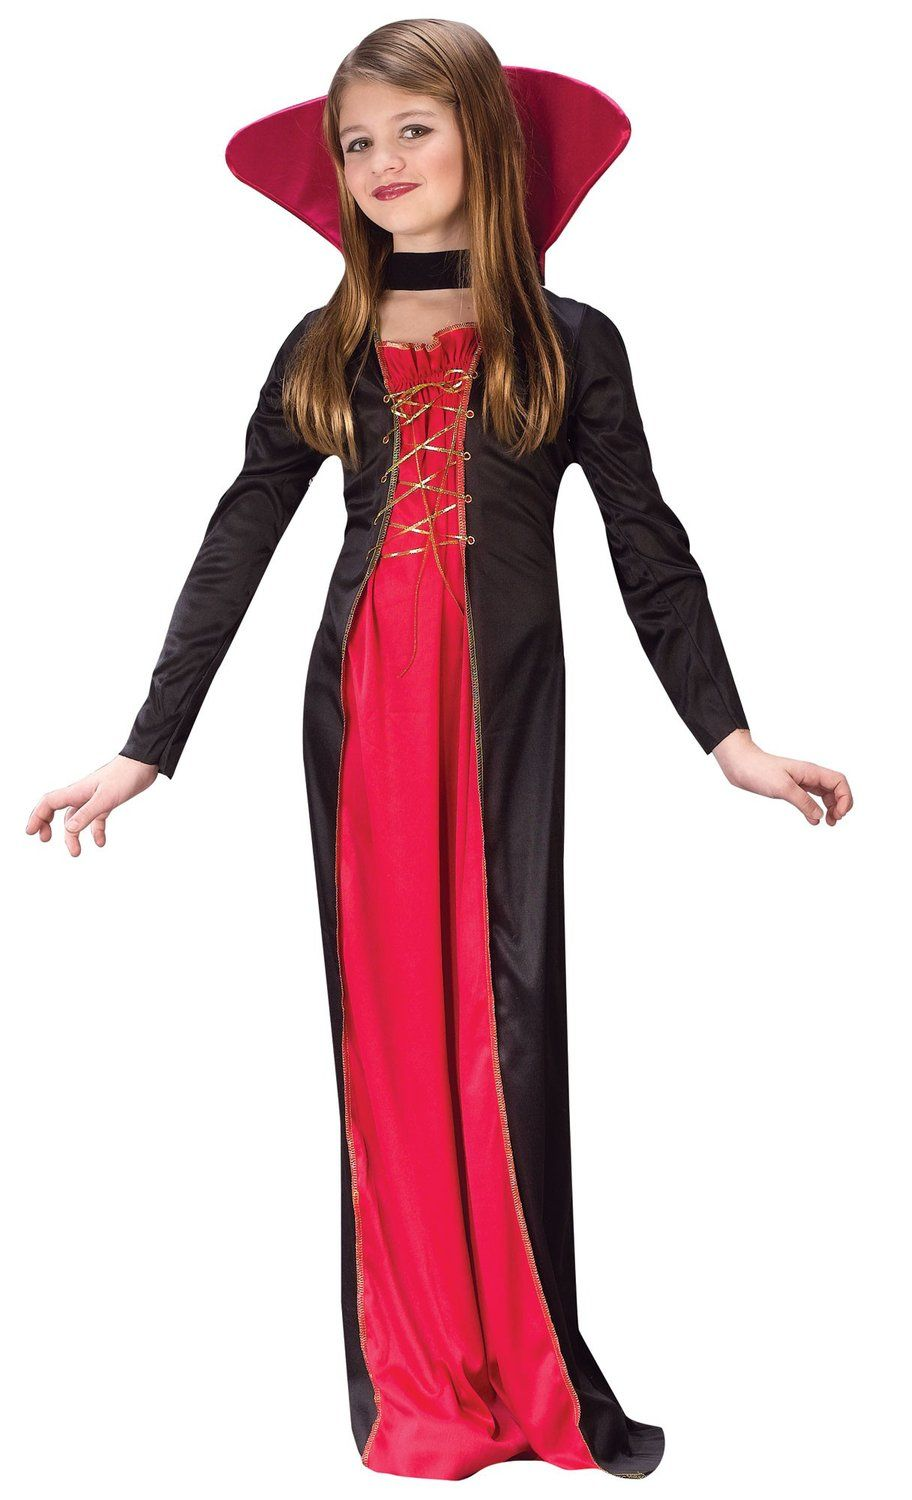 Halloween Vampire Costume Kids.Tween Girl Vampire Costumes Kids Victorian Vampiress Costume Kids